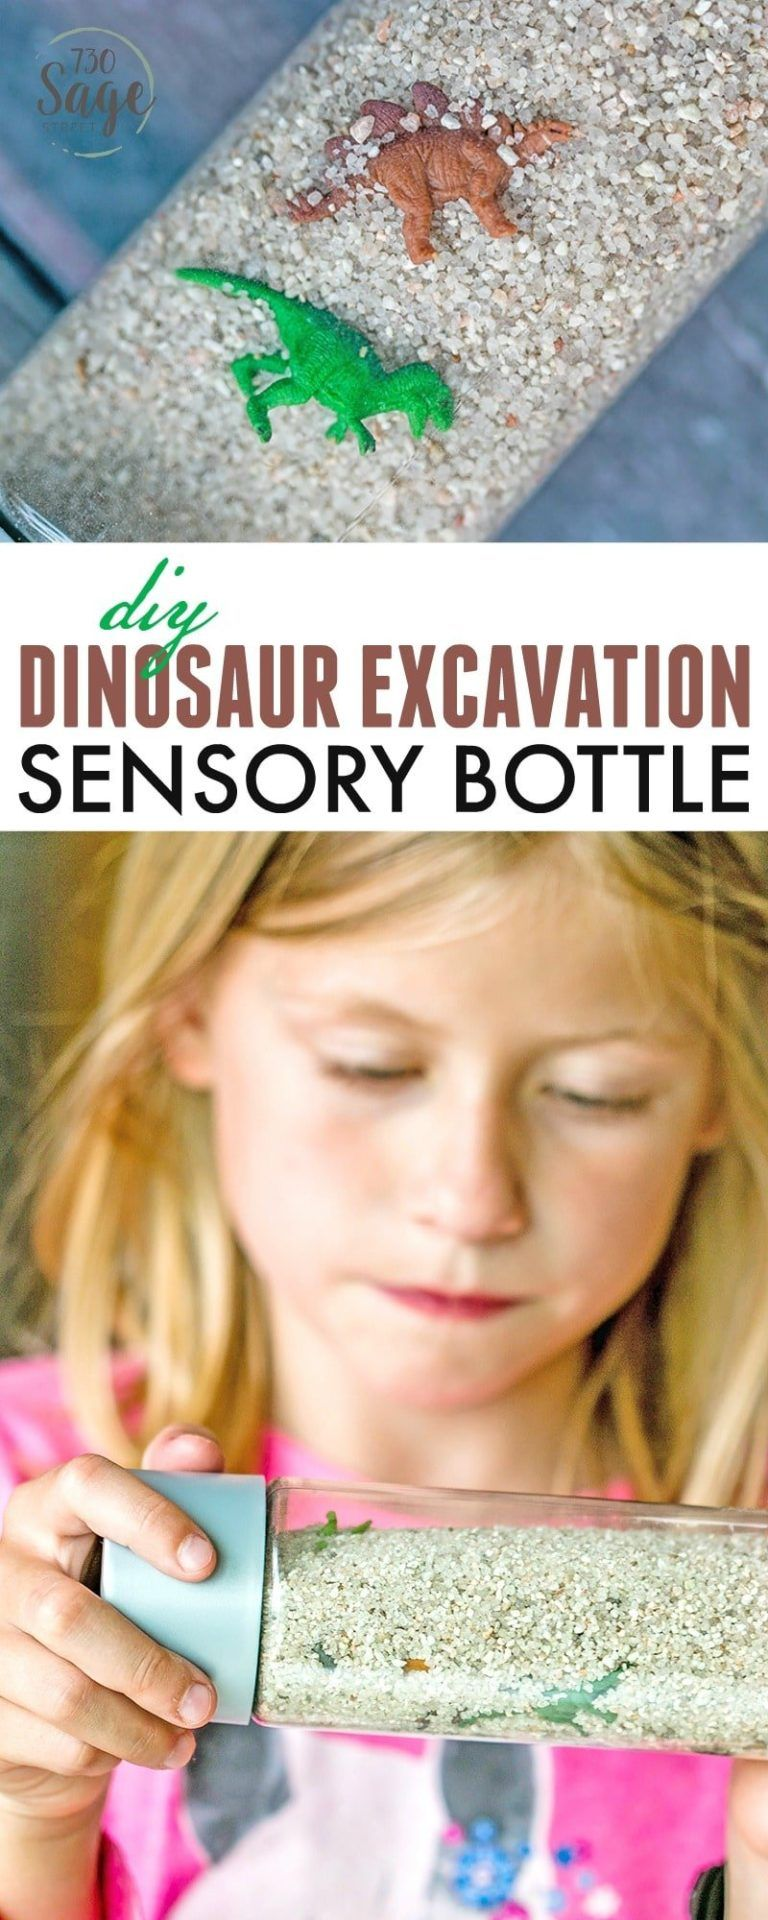 DIY Dinosaur Excavation Sensory Bottle #sensorybottles